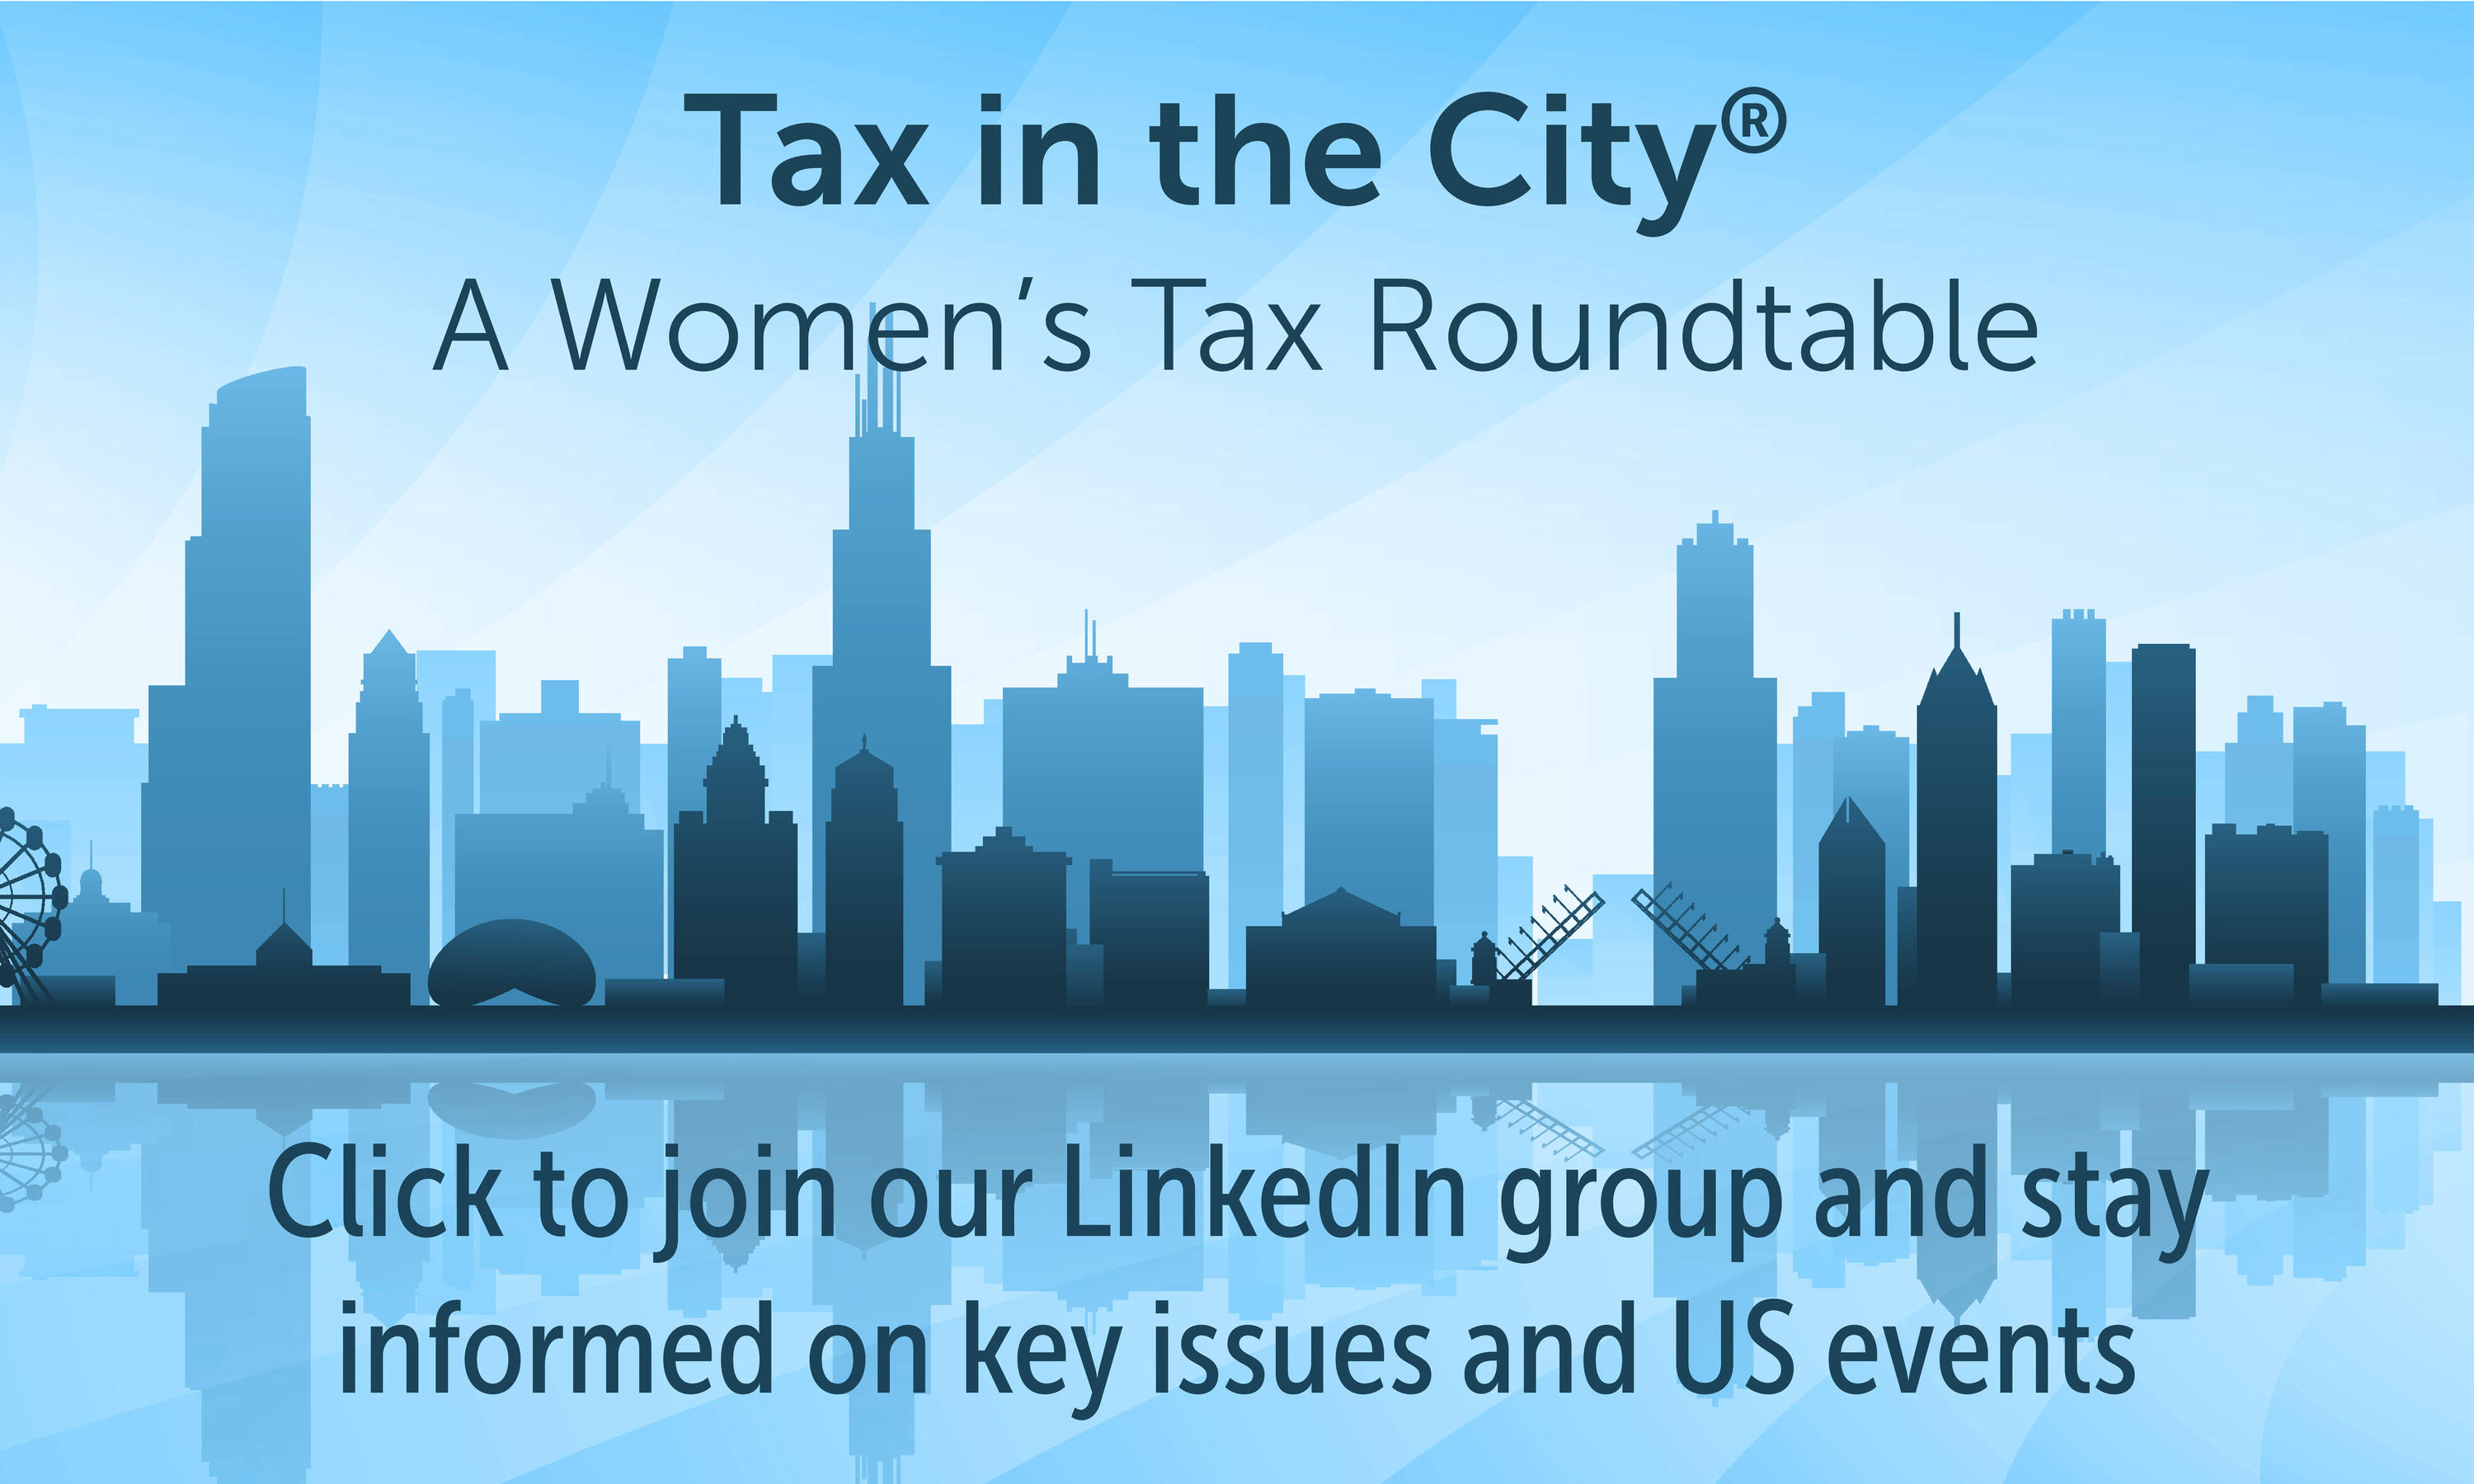 Tax in the City® – A Women's Tax Roundtable